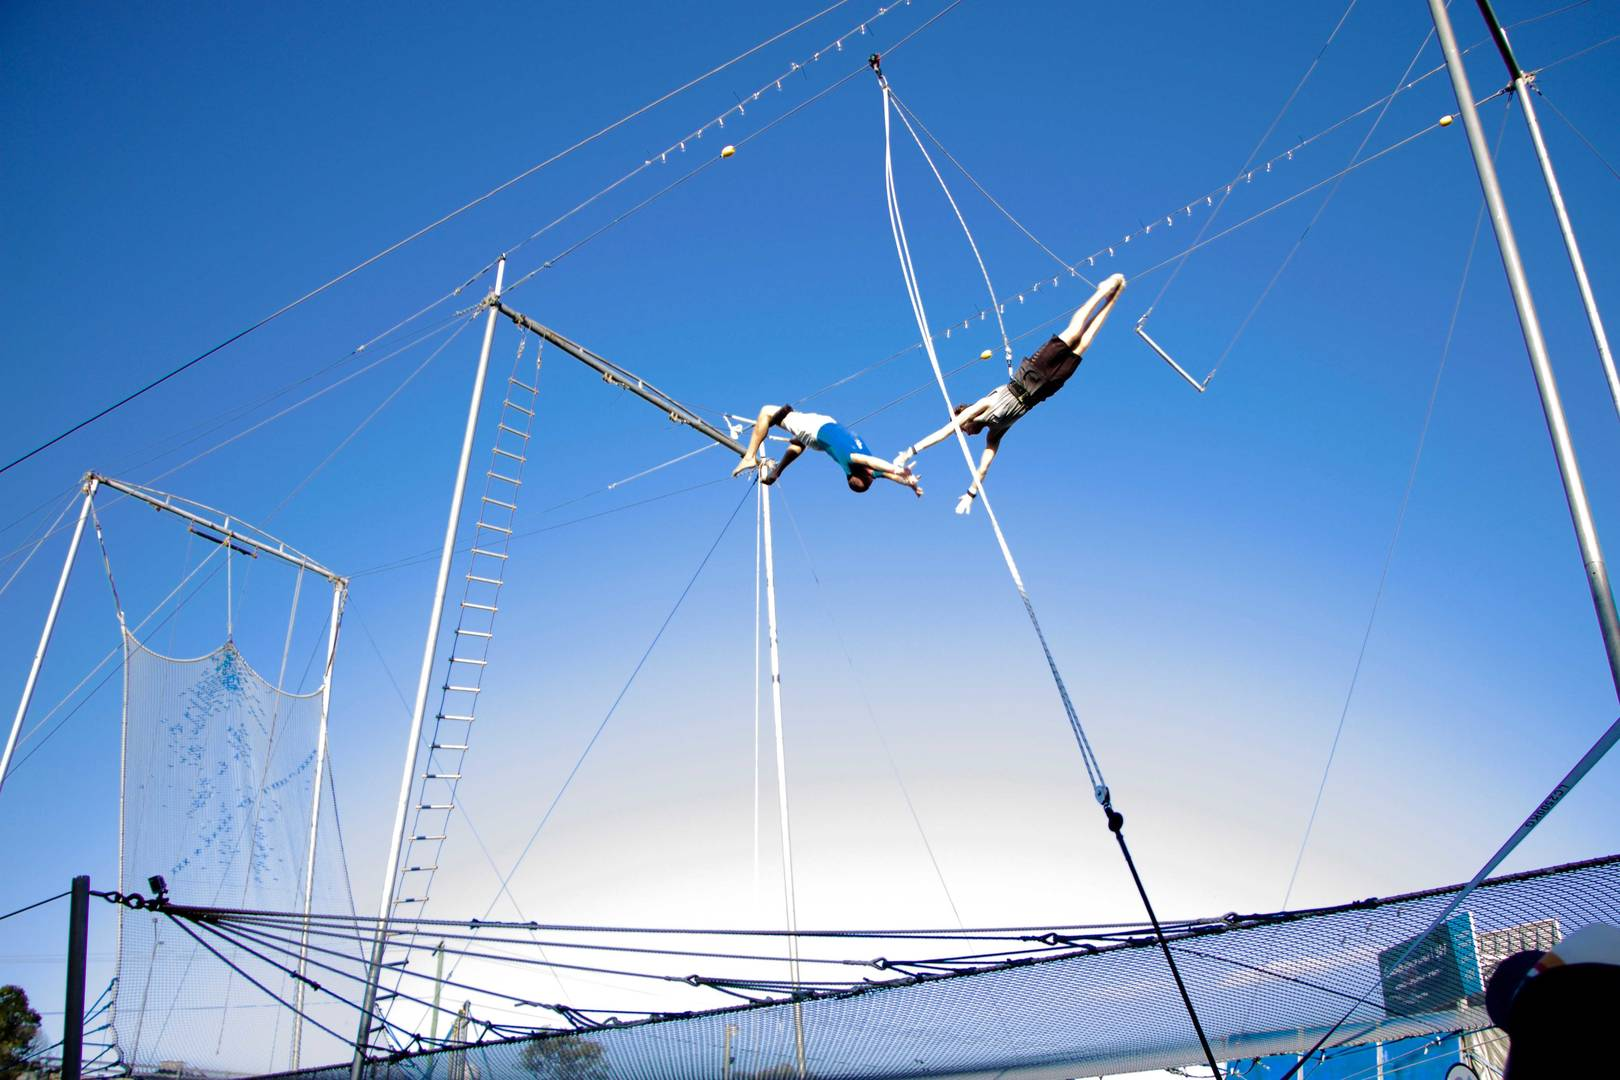 circus arts flying trapeze aquatic centre sydney olympic park